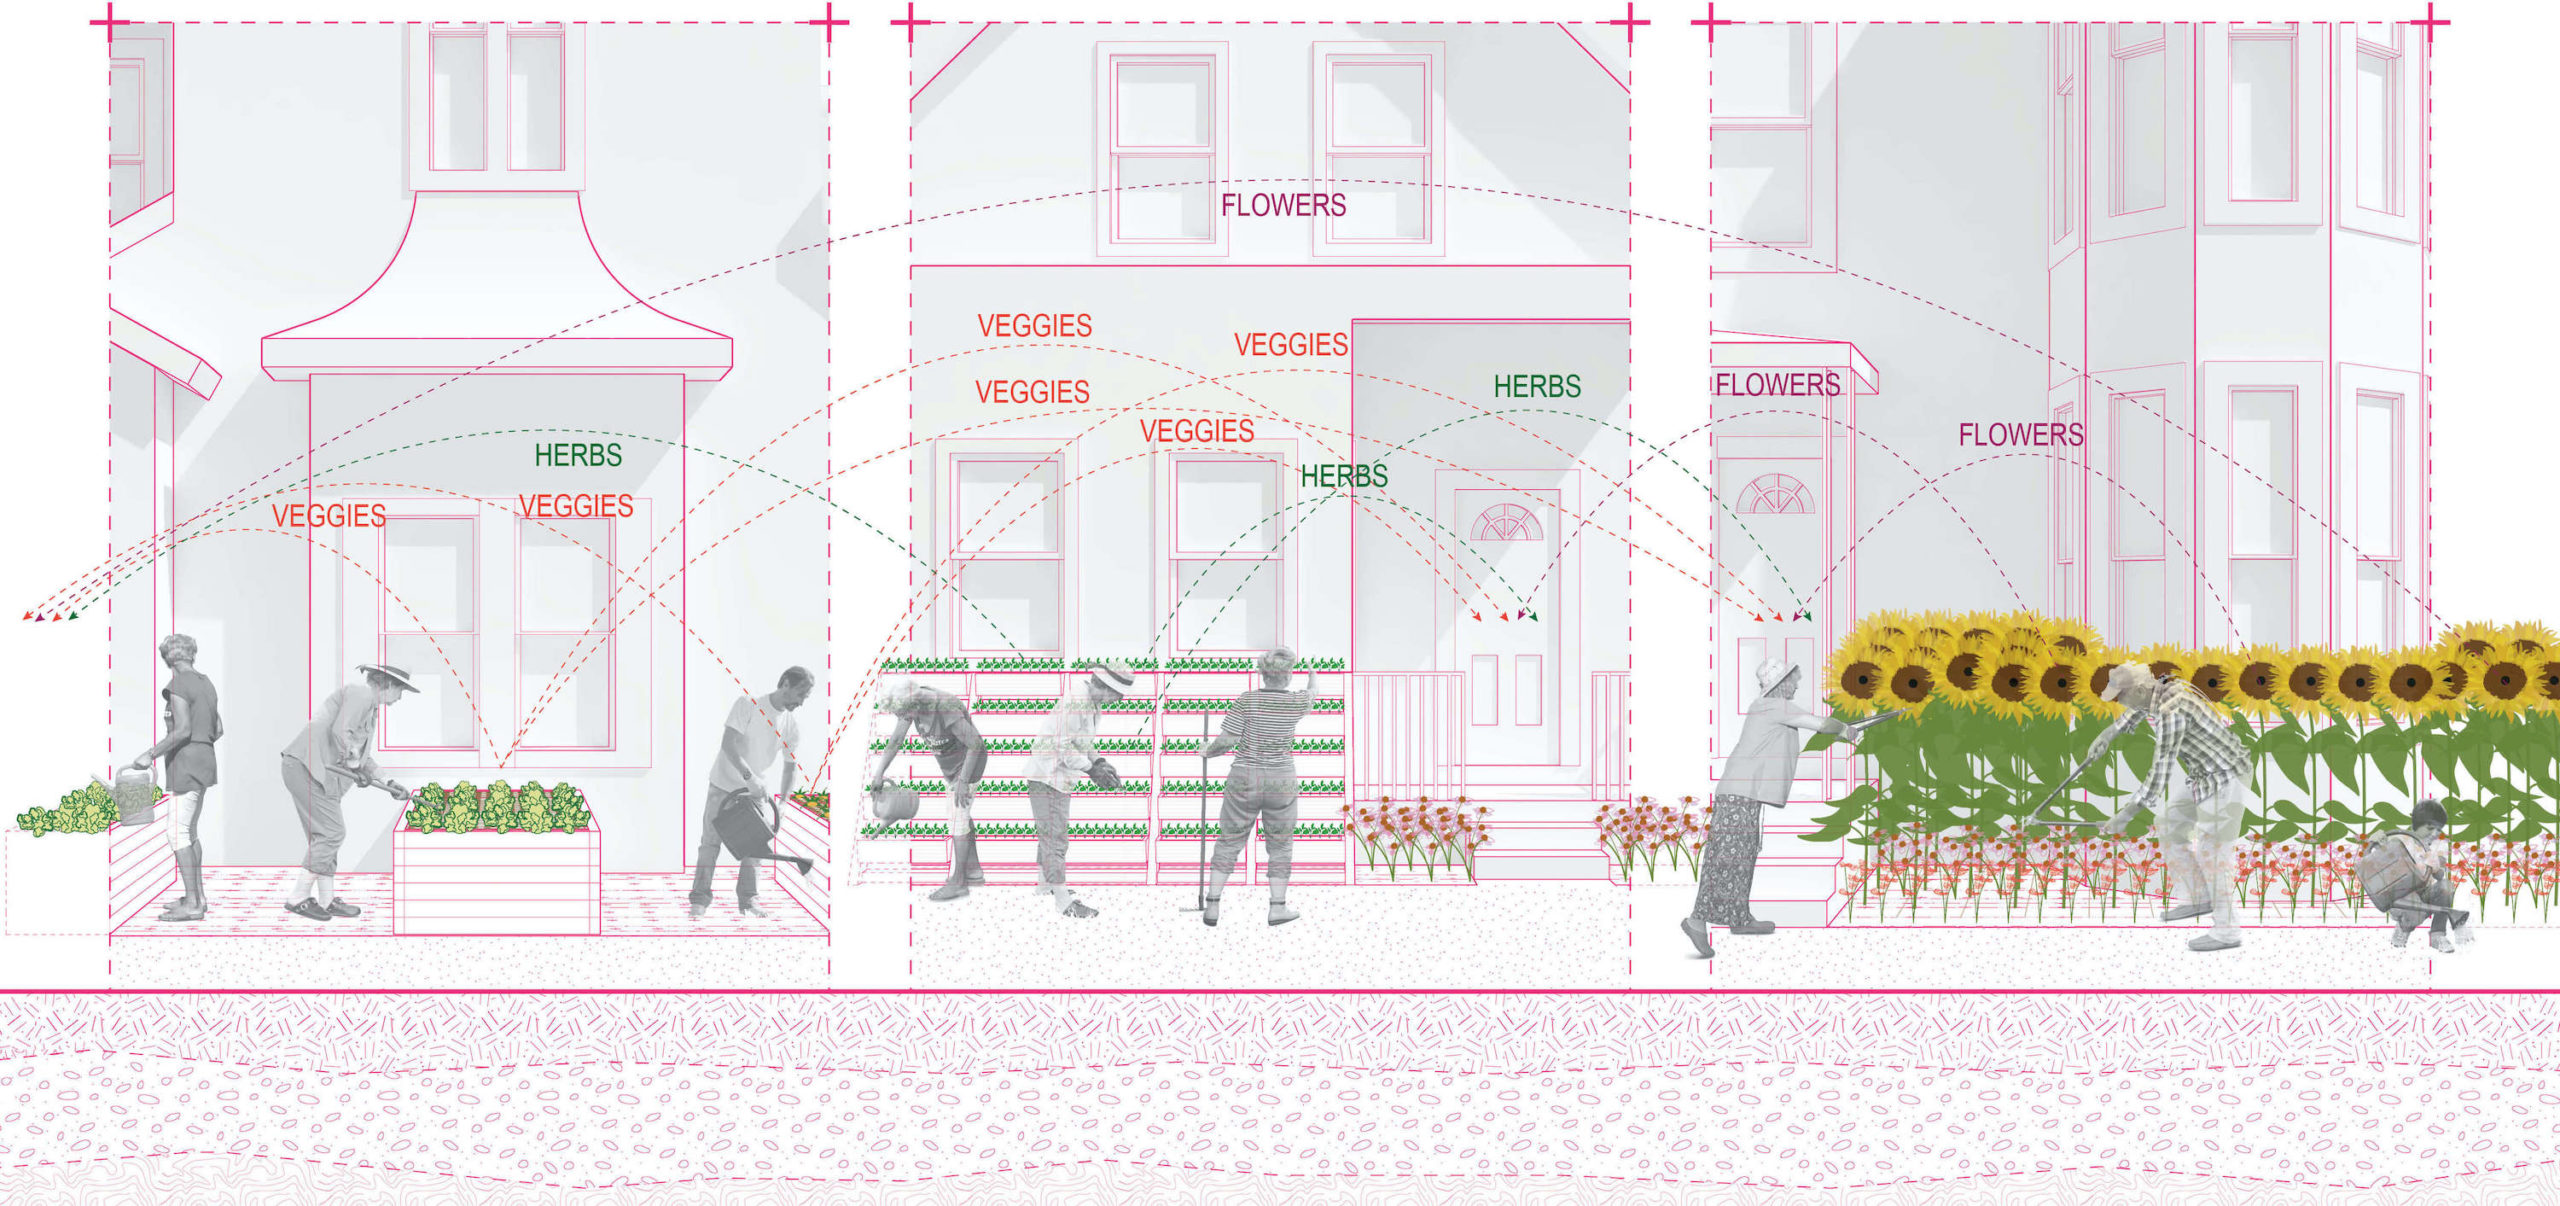 rendering showing herb, veggie, and flower sites.